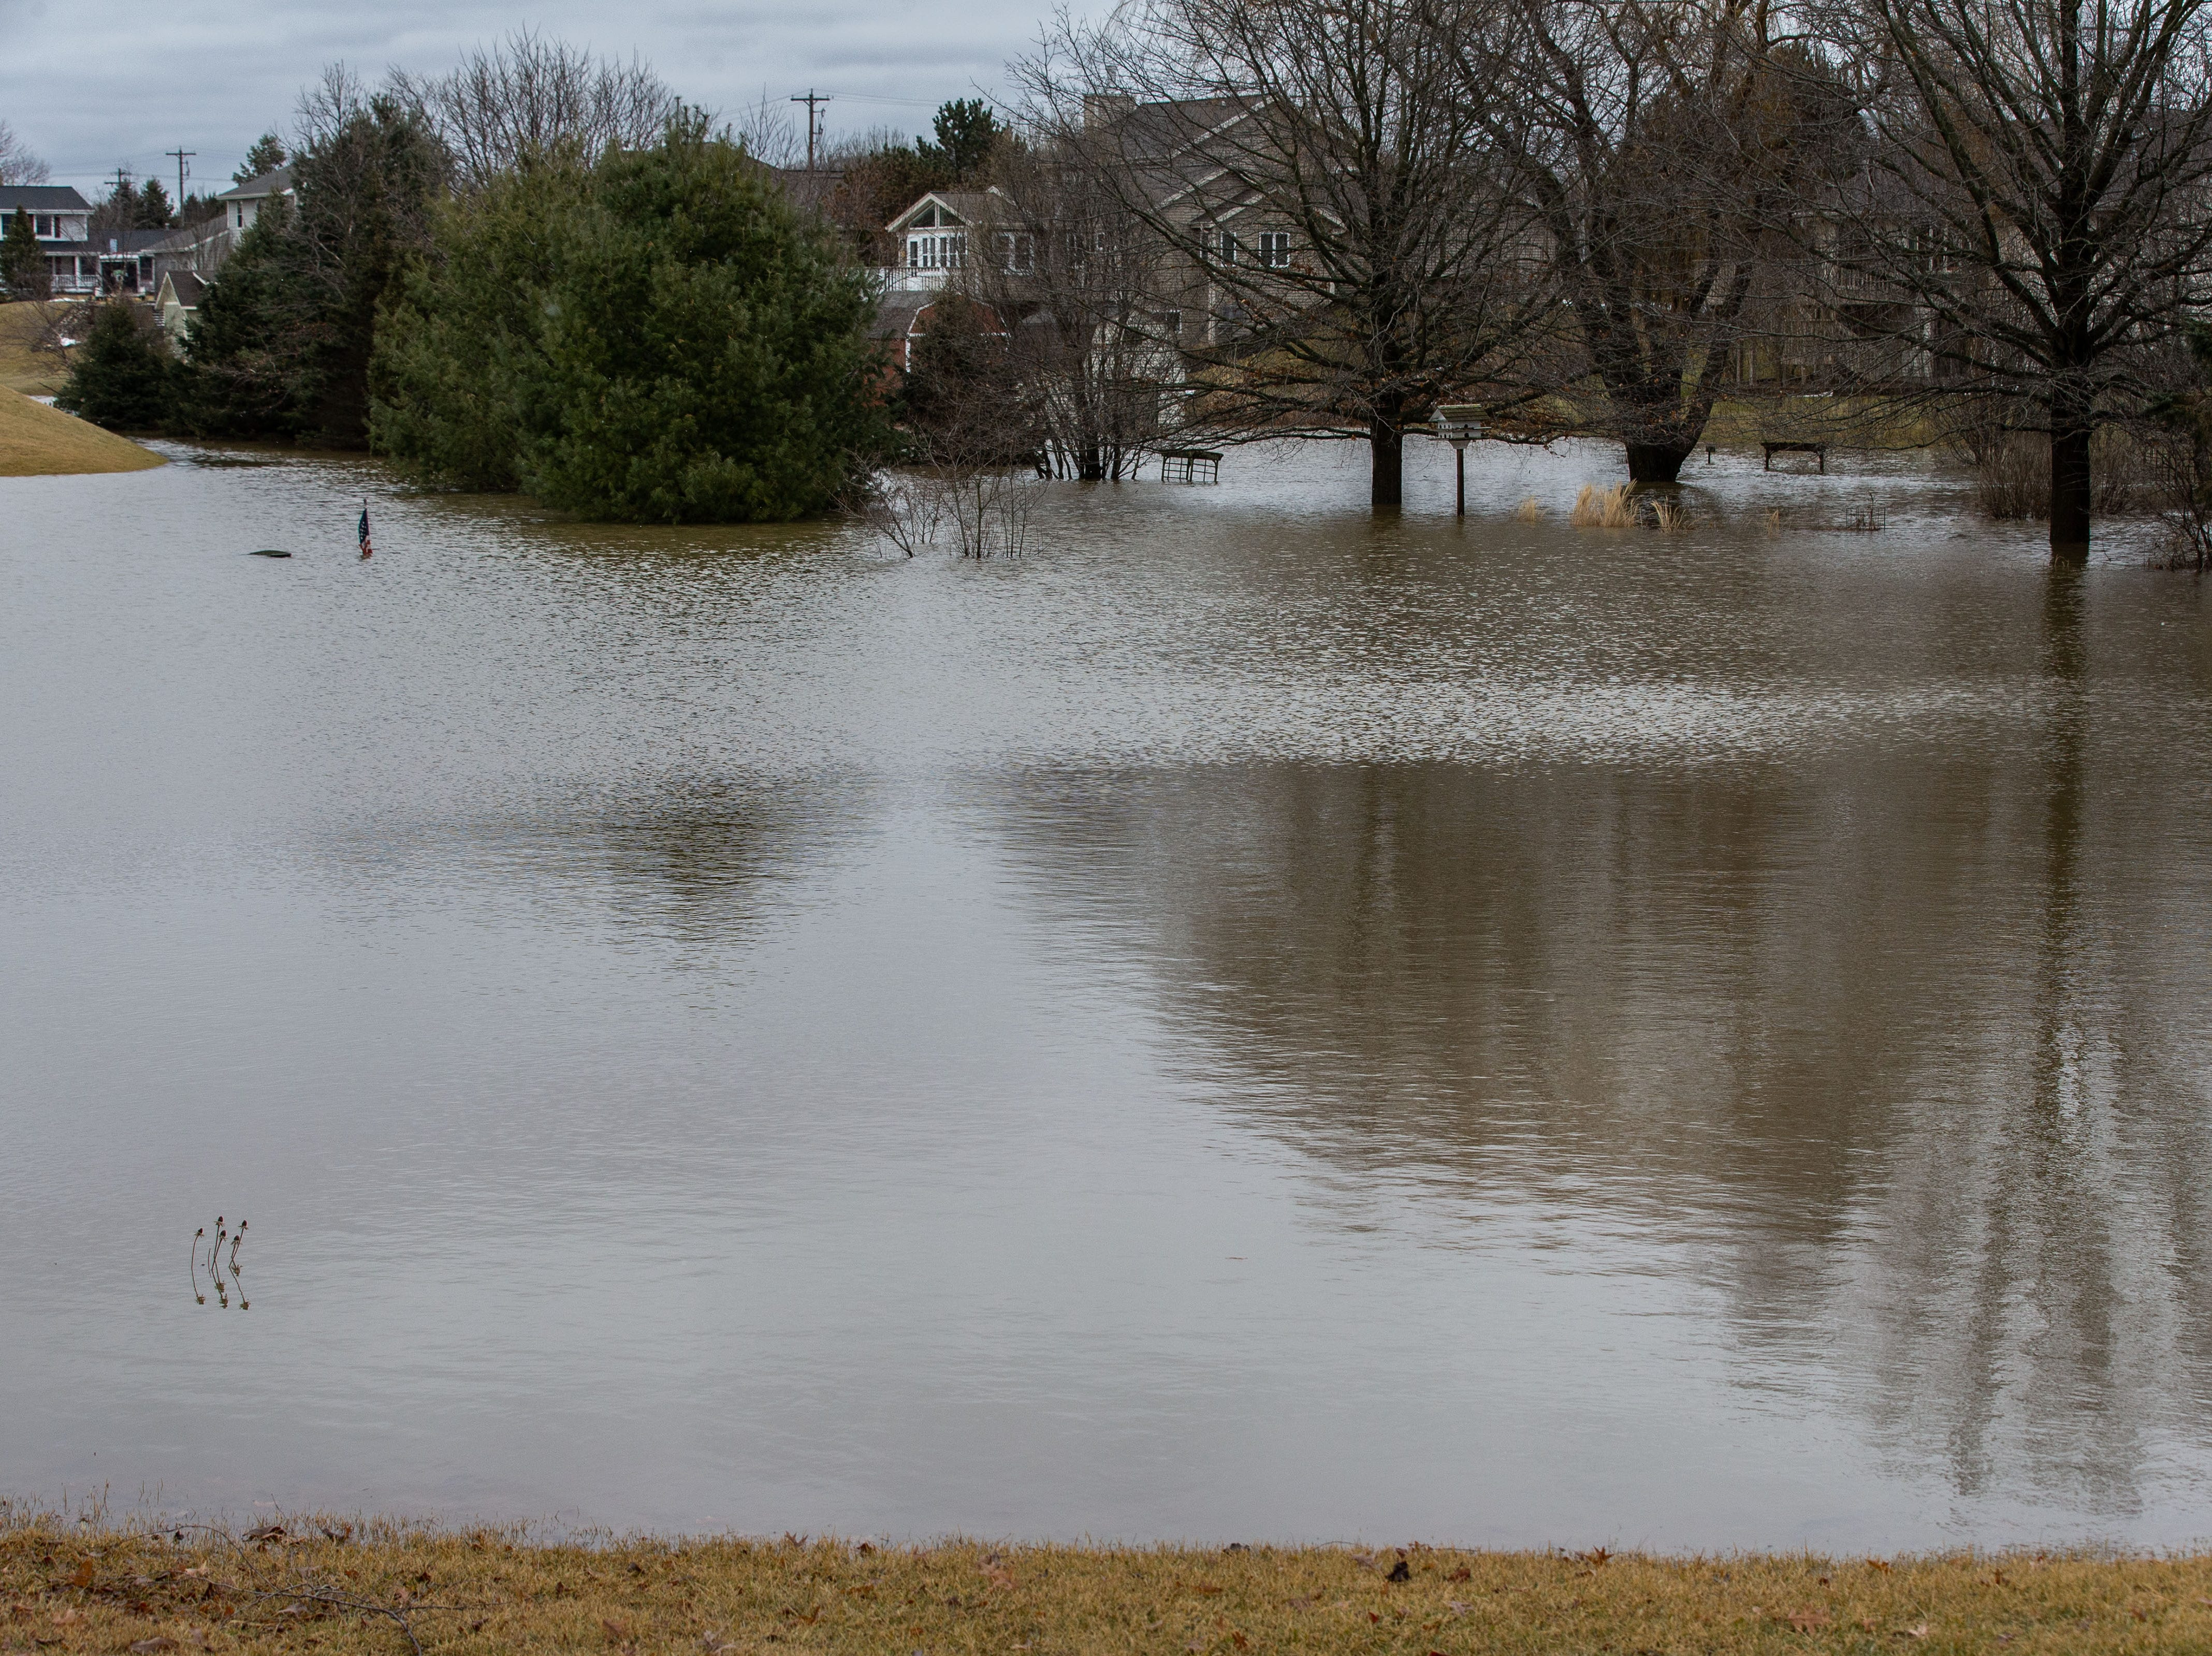 Flood water spills into the front yard of a home on Sweetbriar Lane in the town of Lisbon on Friday, March 15, 2019. Spring-like temperatures caused flooding across both Washington and Waukesha counties.